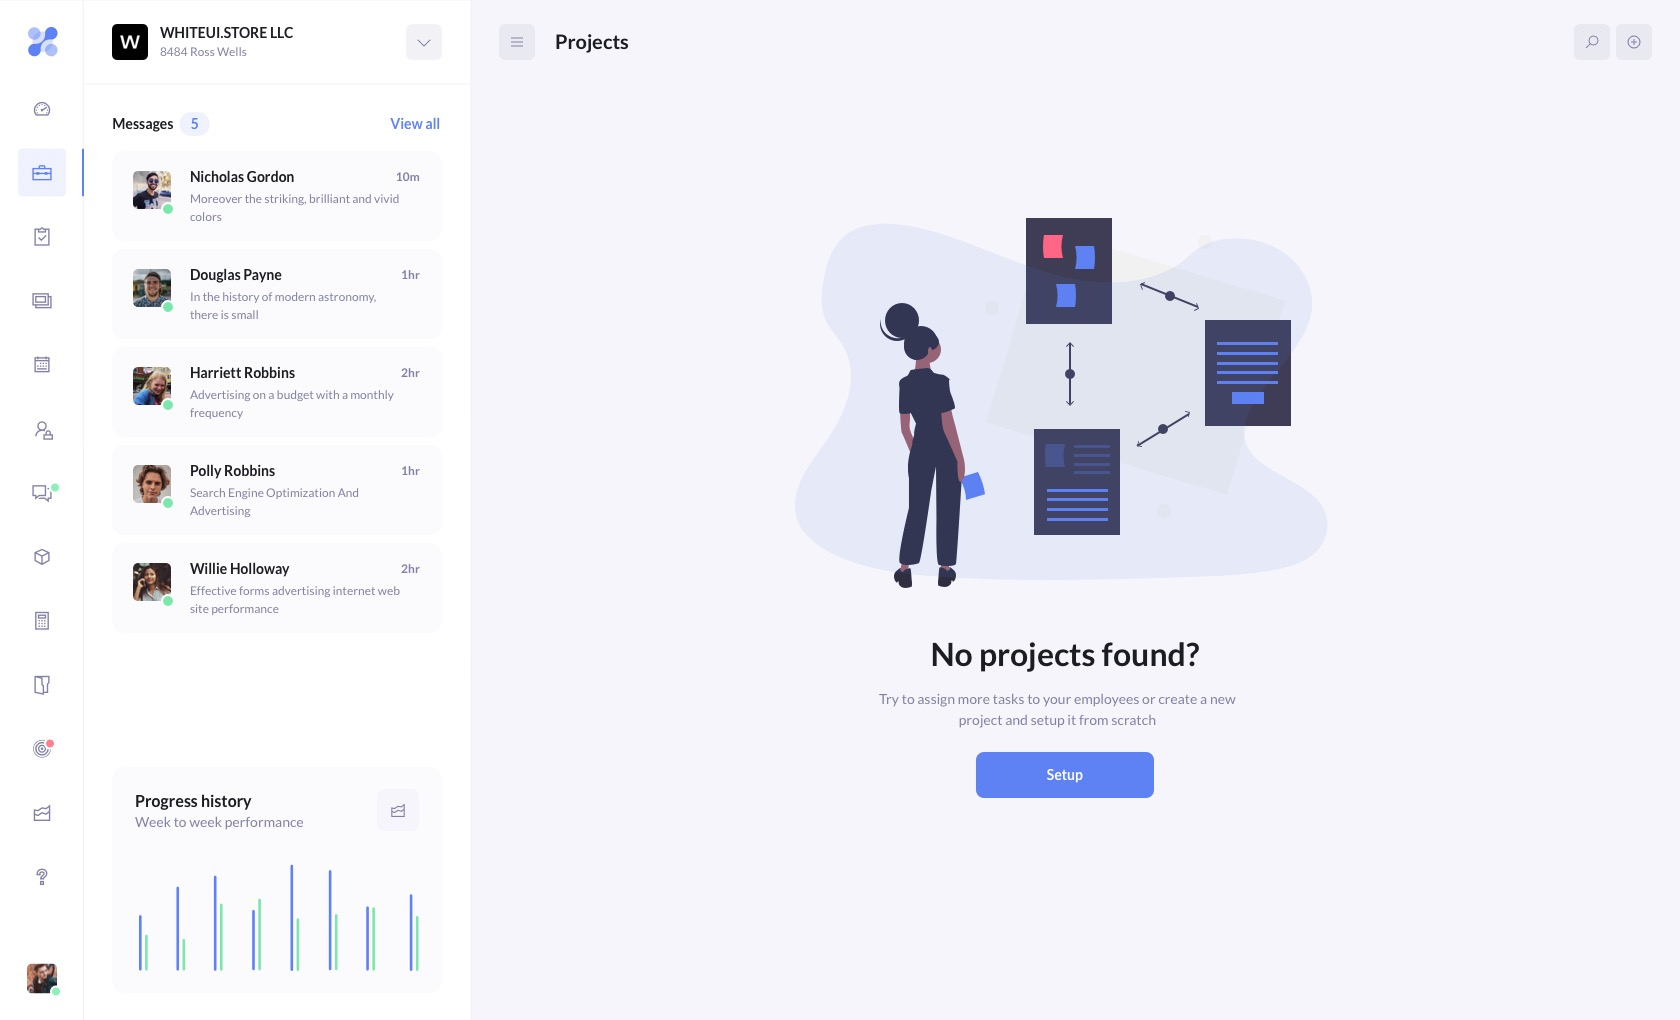 betacrm preview projects